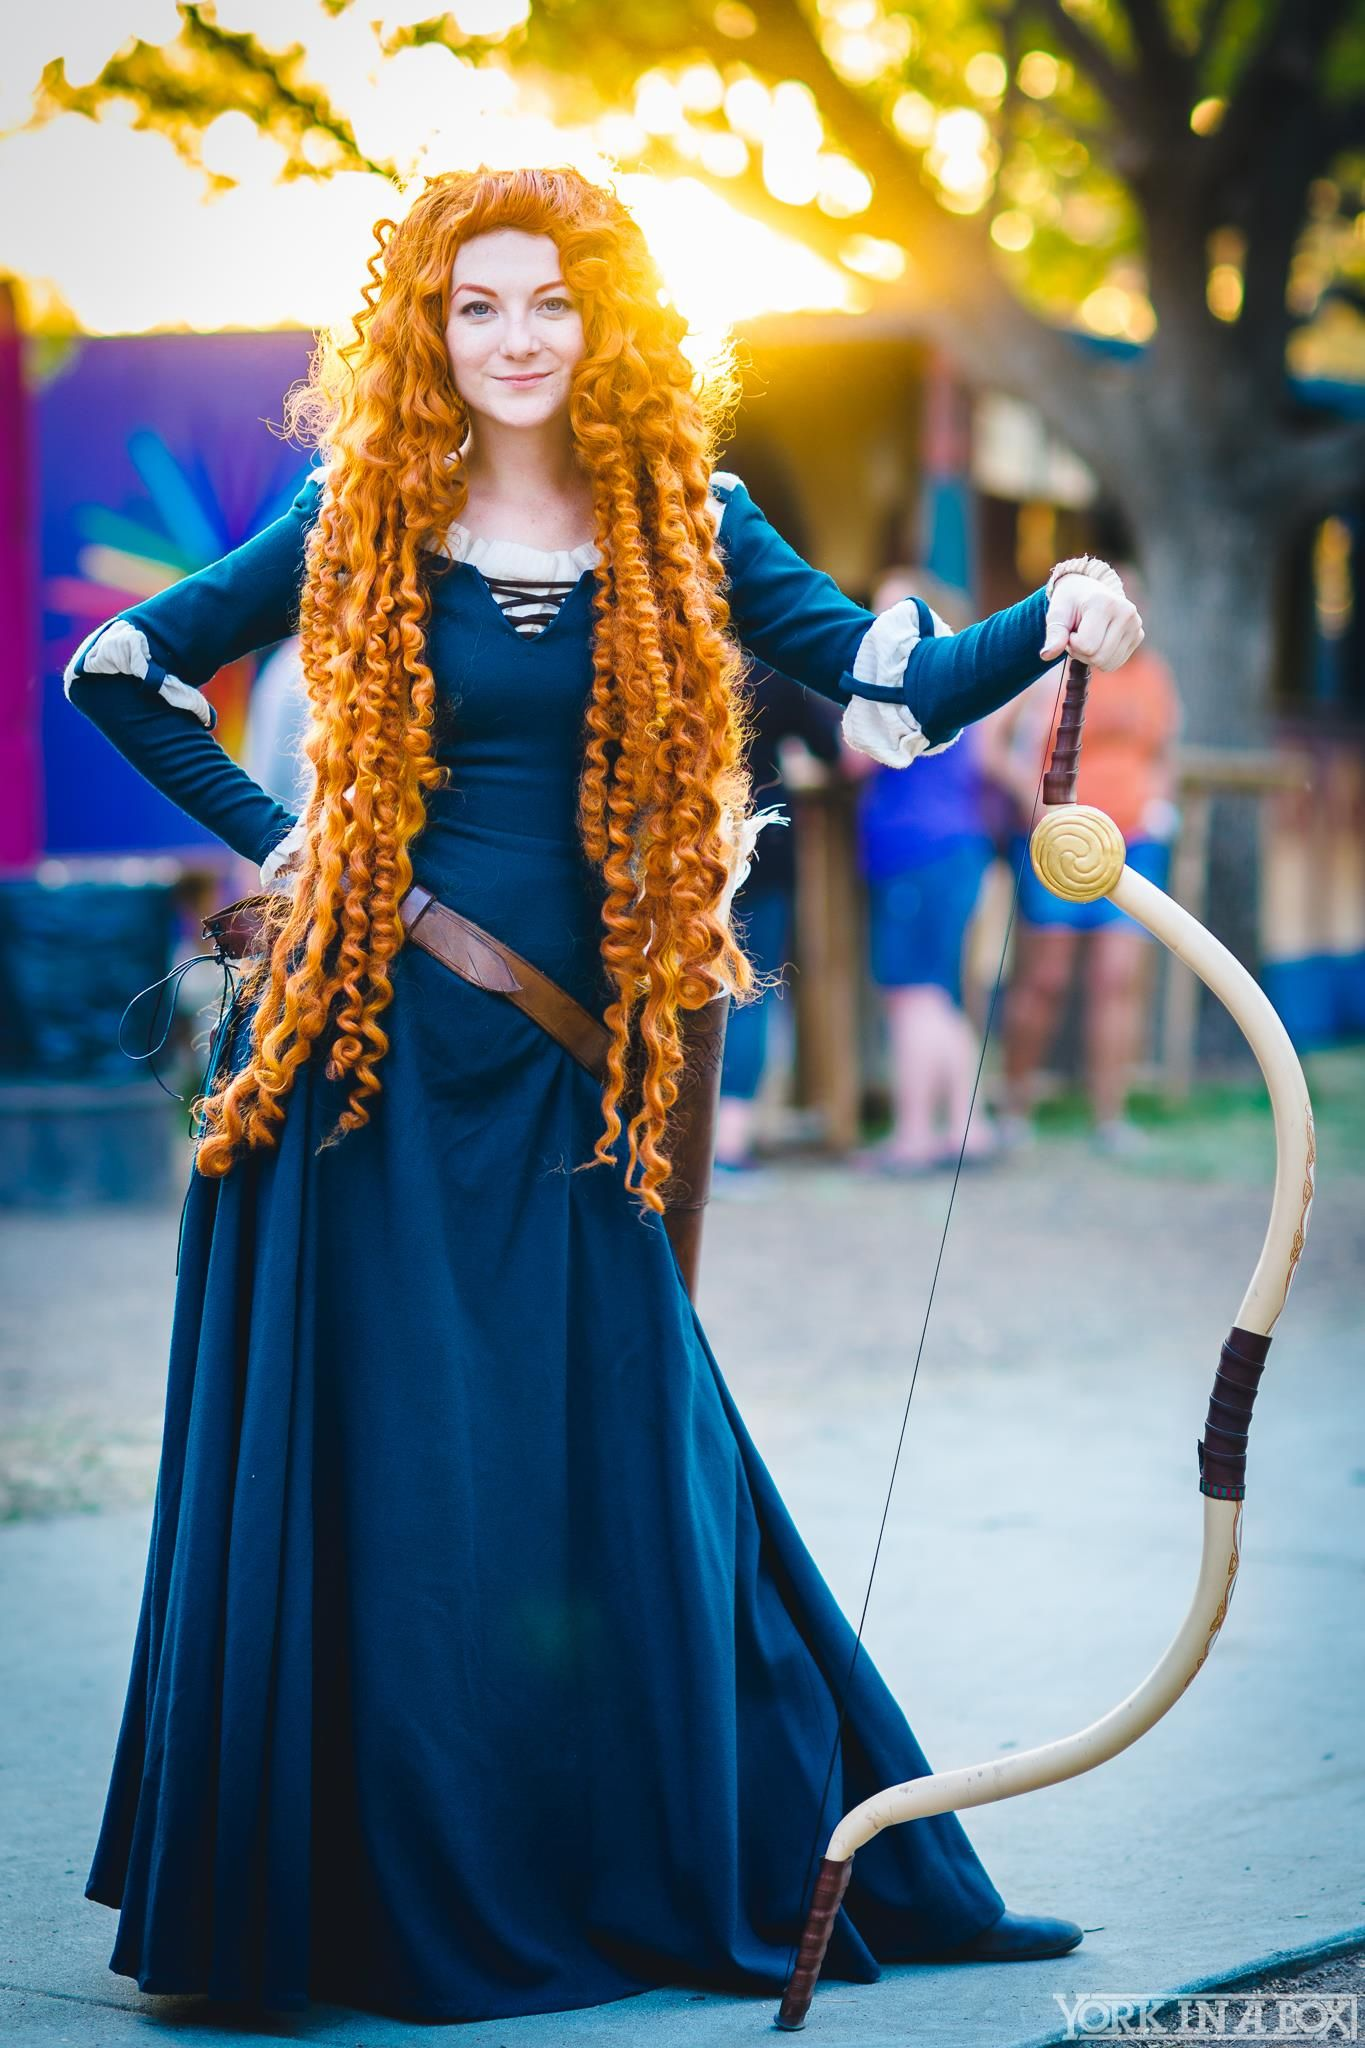 brave merida cosplay by ashlynne dae for 2015 renaissance faire photo by yorkinabox. Black Bedroom Furniture Sets. Home Design Ideas